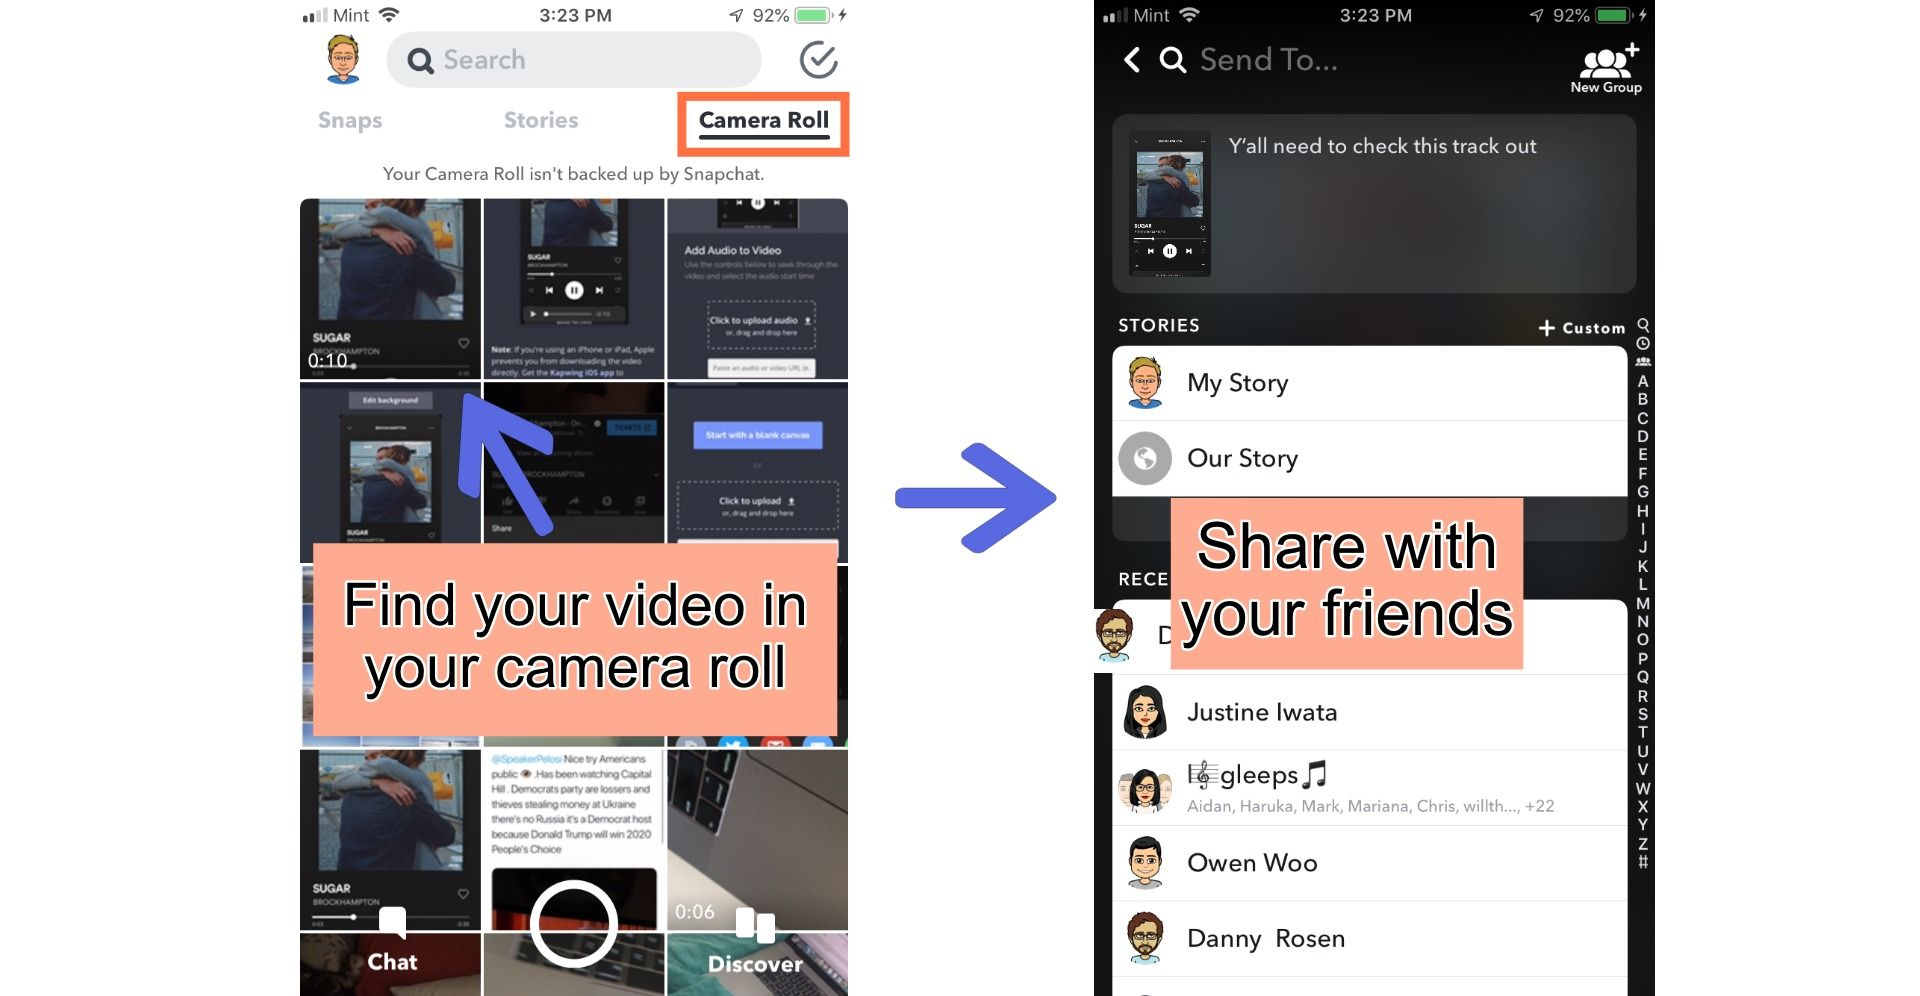 Screenshots showing how to share videos to Snapchat.